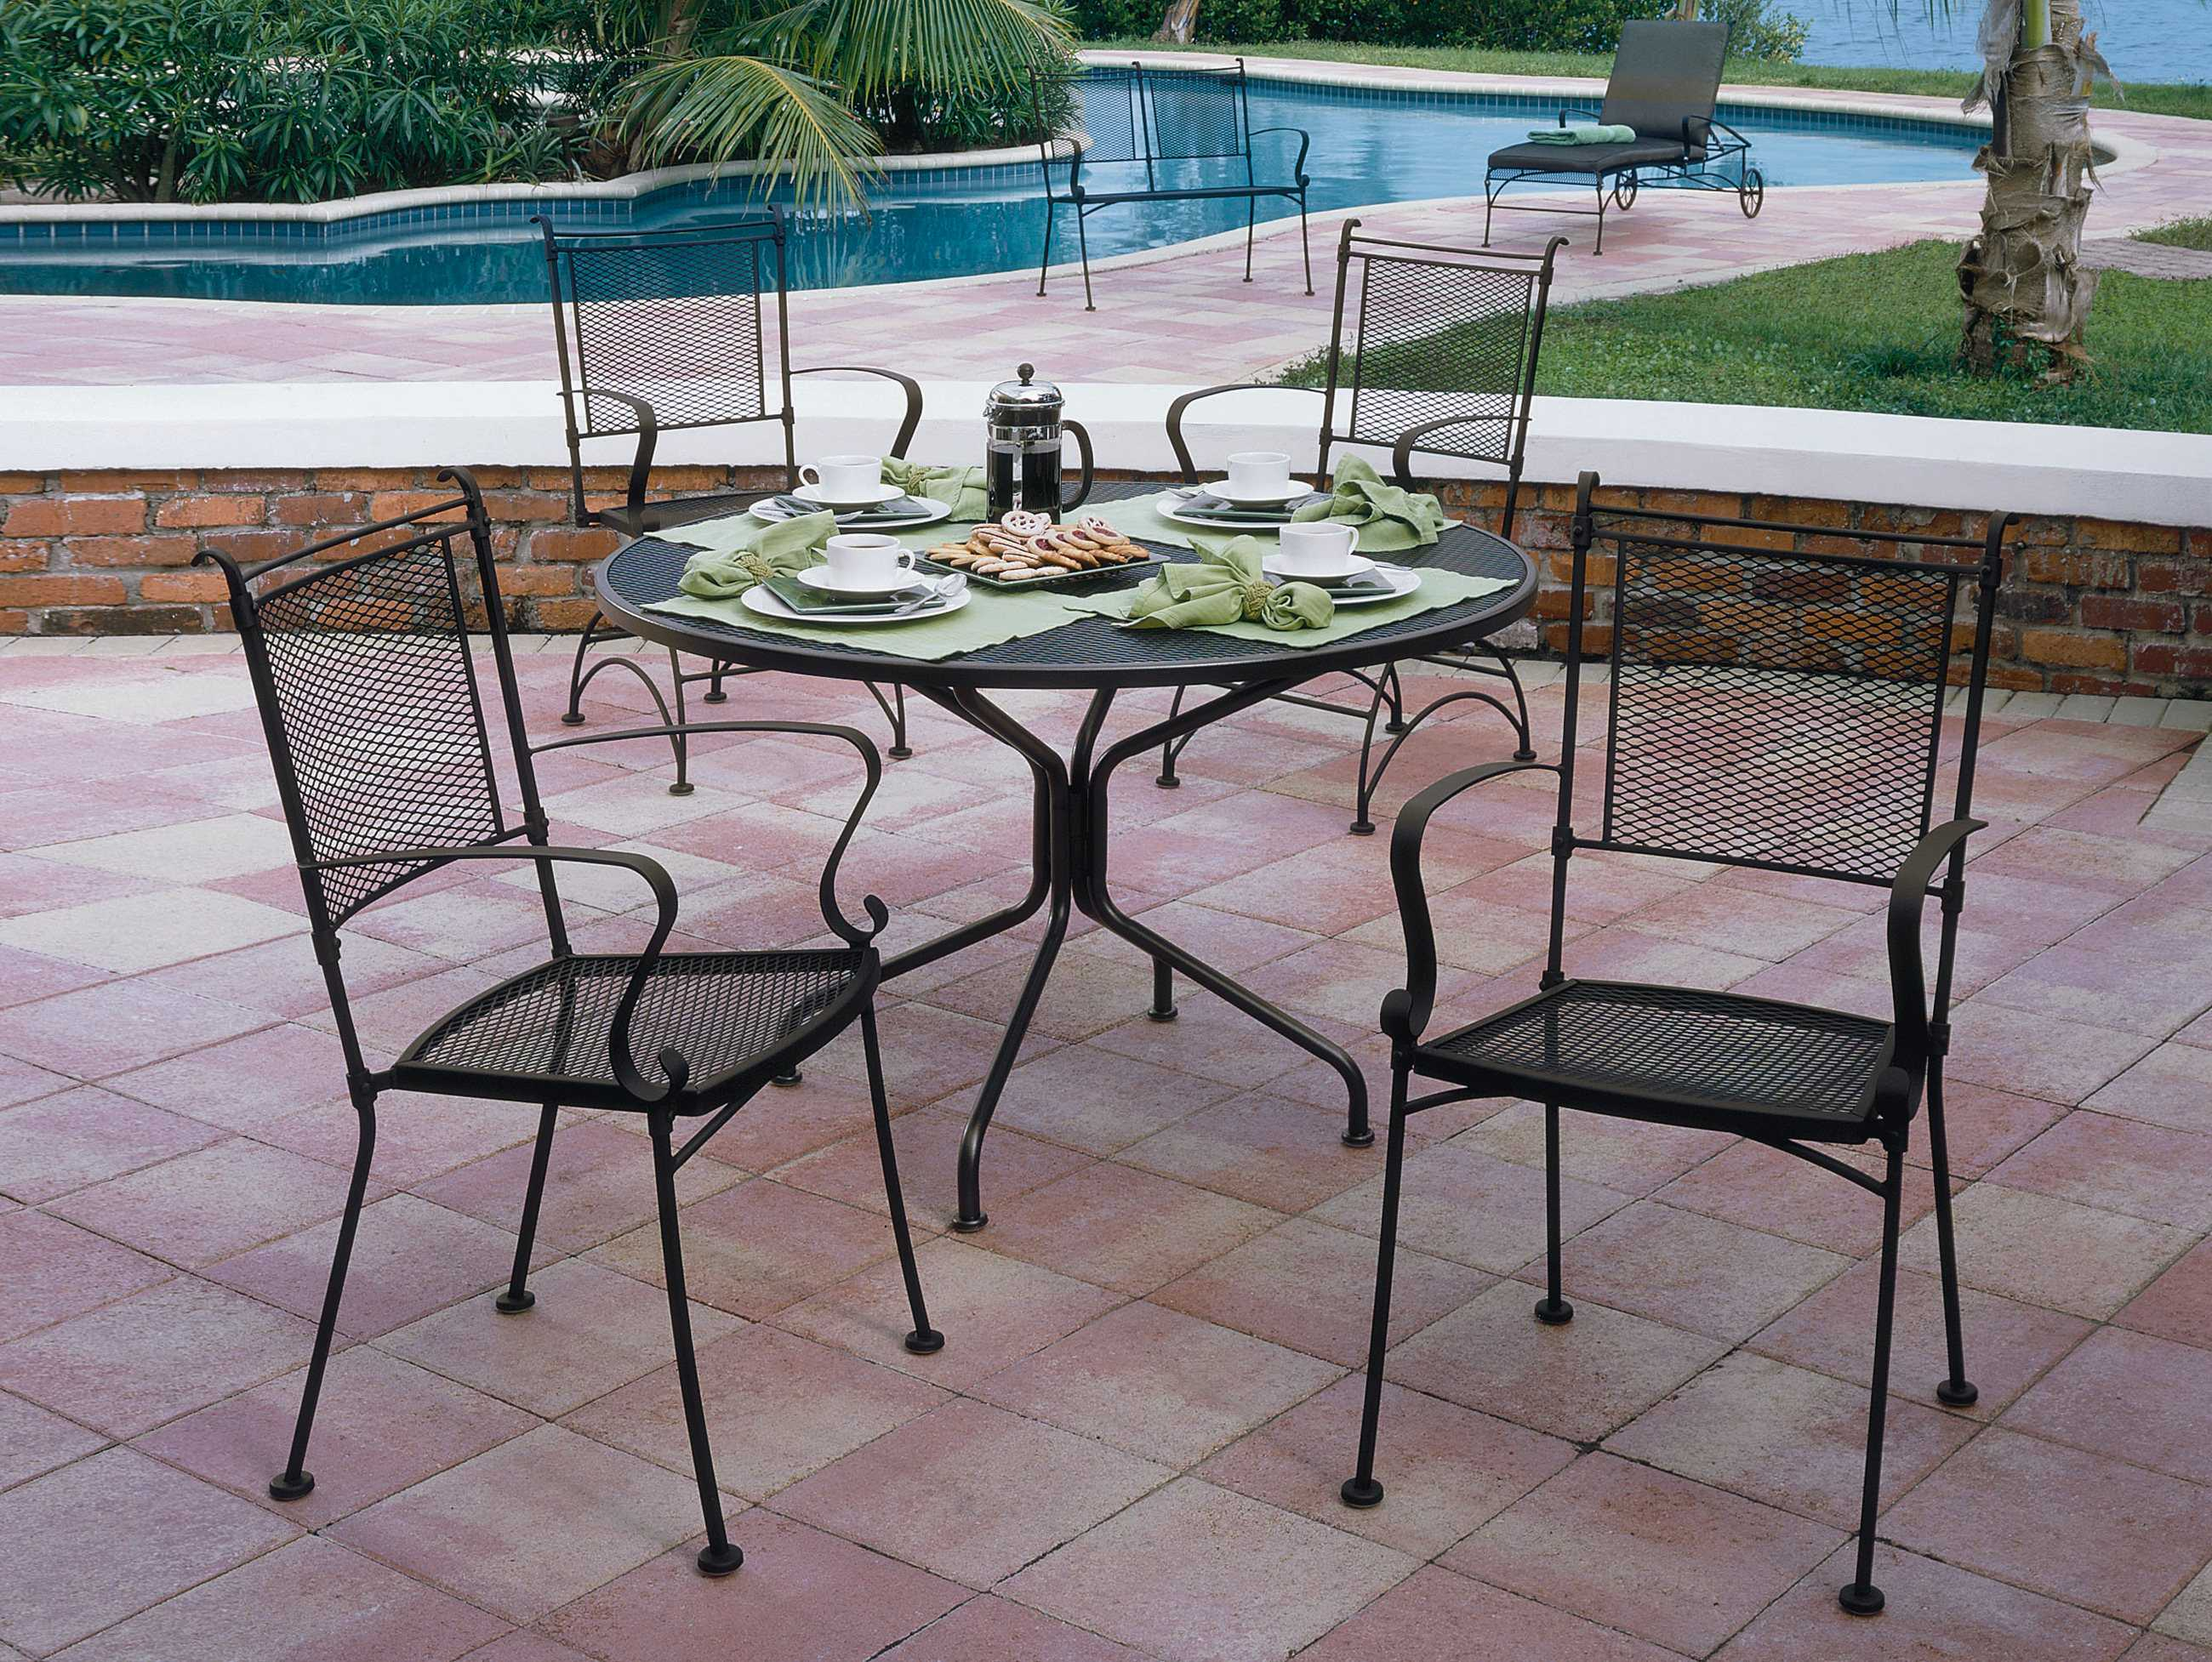 woodard wrought iron 42 round 4 spoke table with umbrella hole 190229. Black Bedroom Furniture Sets. Home Design Ideas